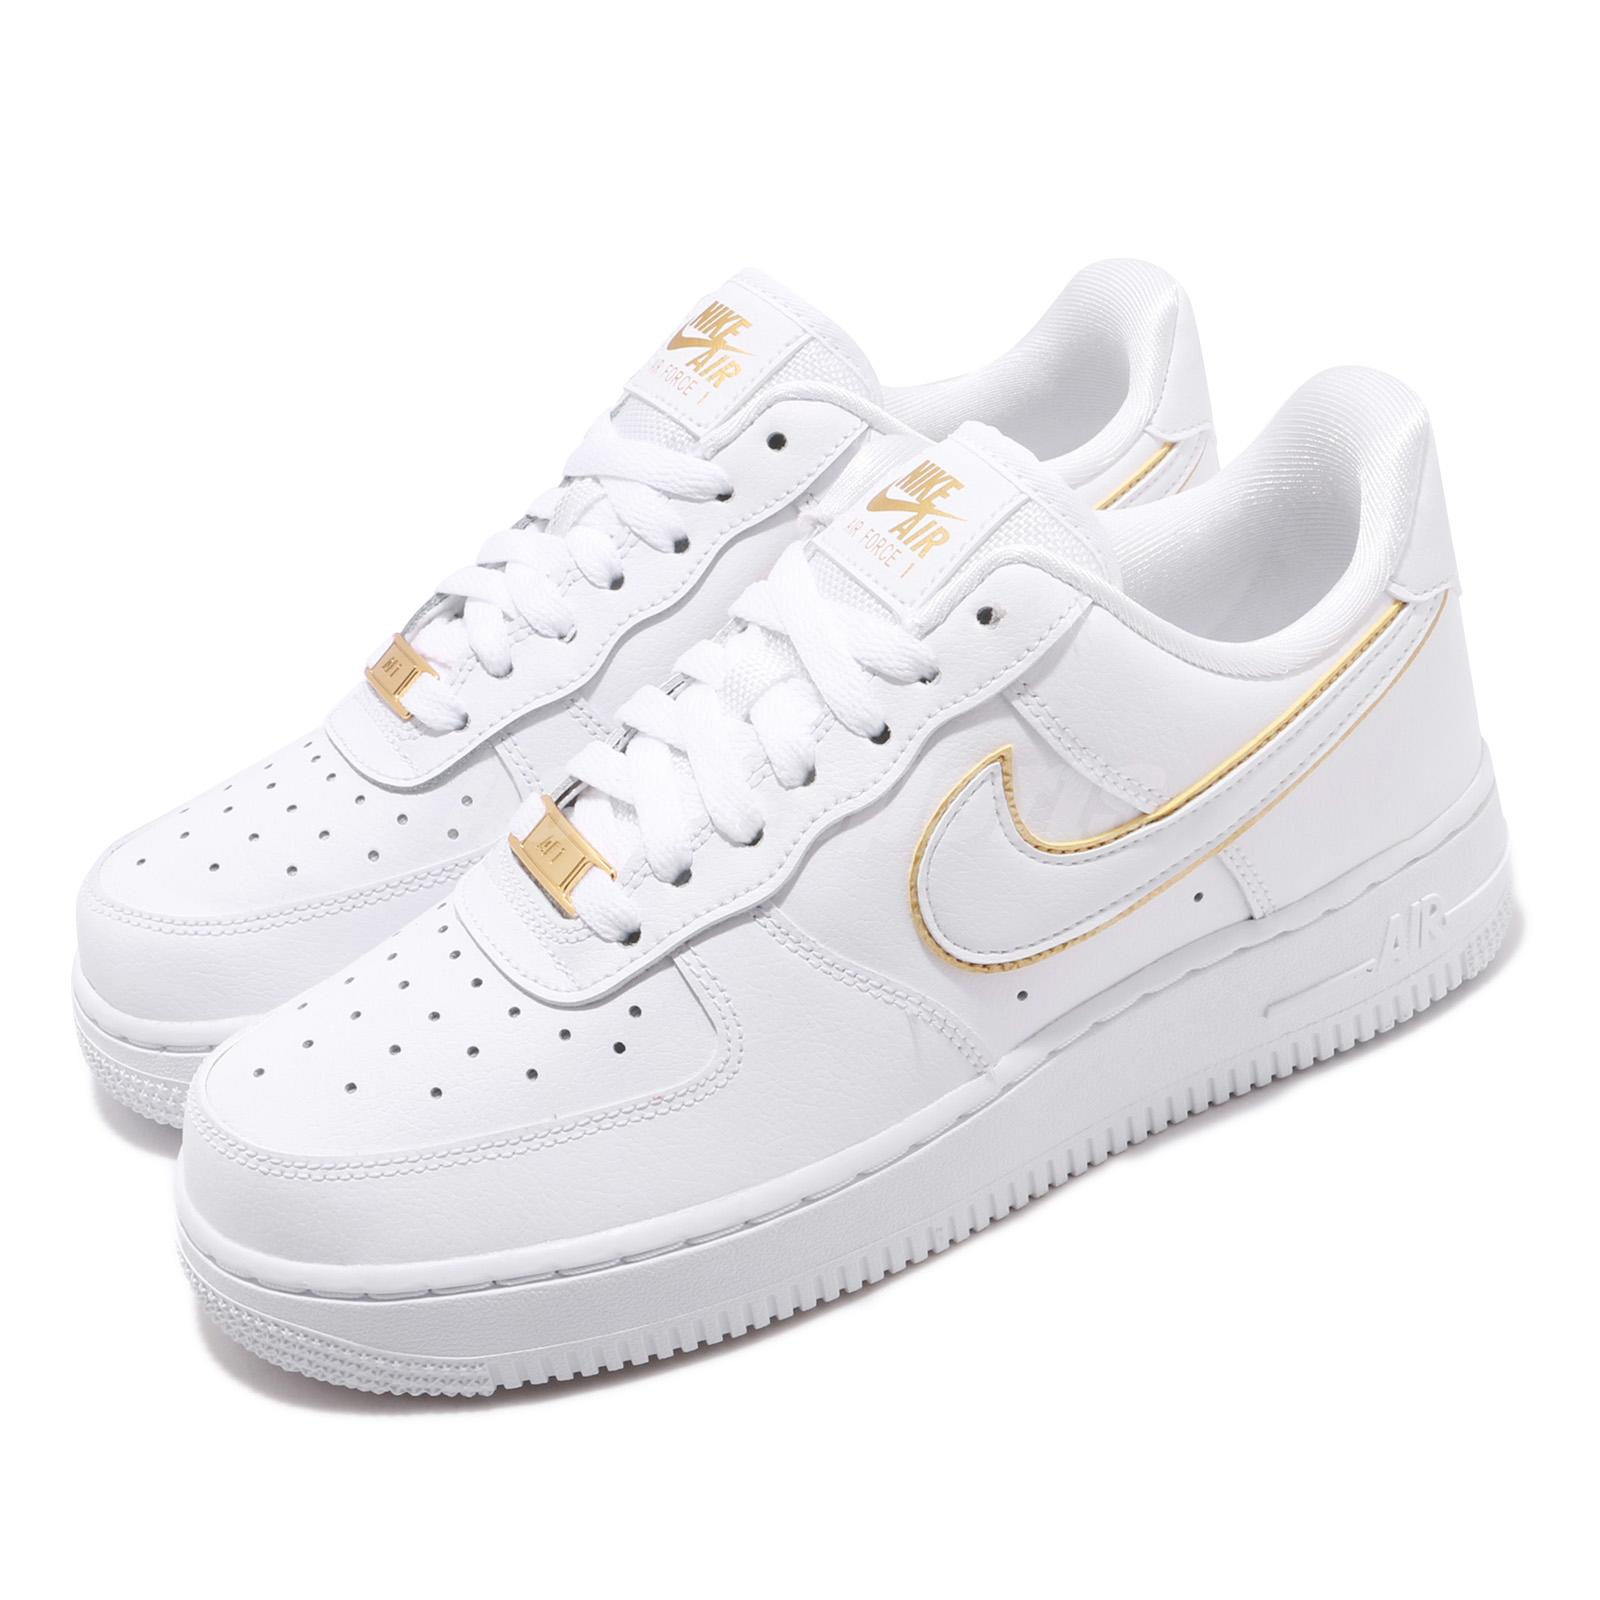 Details about Nike Wmns Air Force 1 07 ESS AF1 White Gold Women Shoes  Sneakers AO2132-102